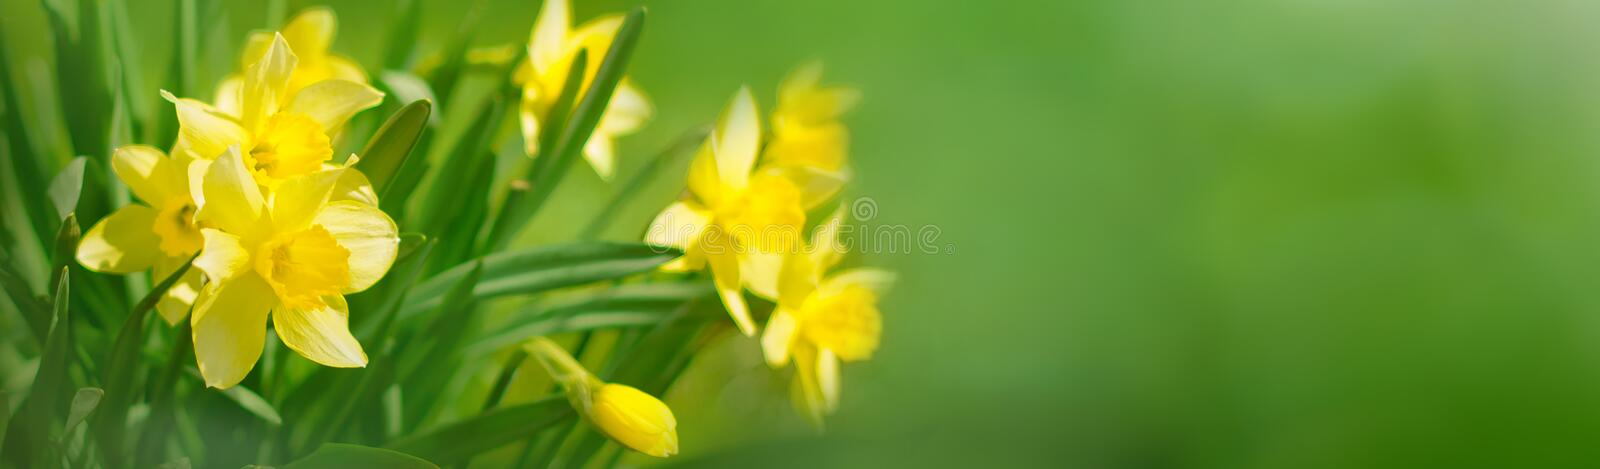 Beautiful Panoramic Spring background With Daffodils Flowers stock photo